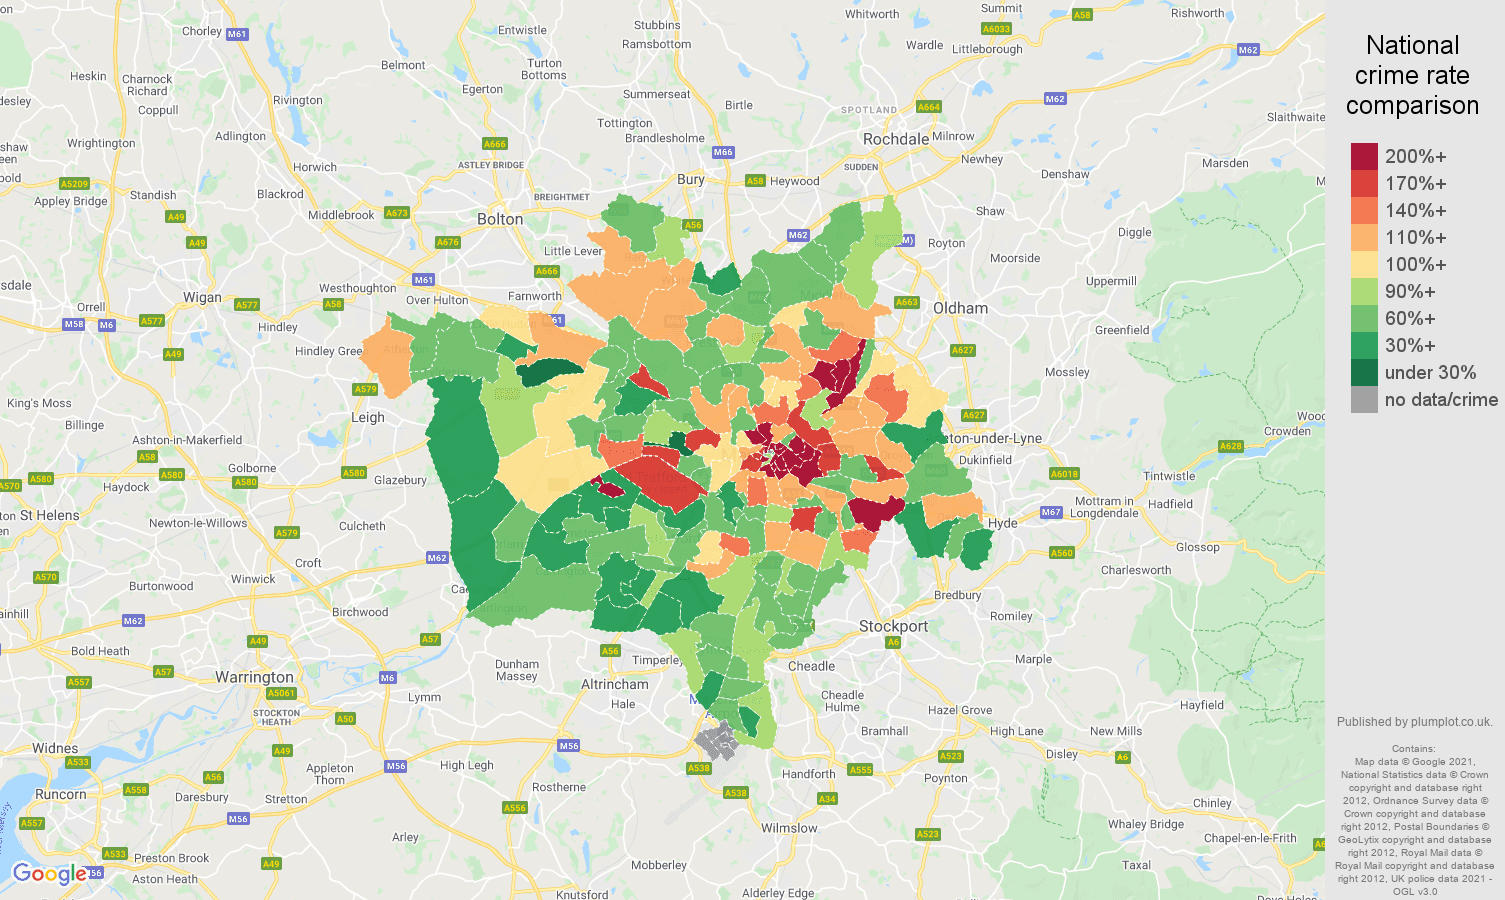 Manchester other theft crime rate comparison map